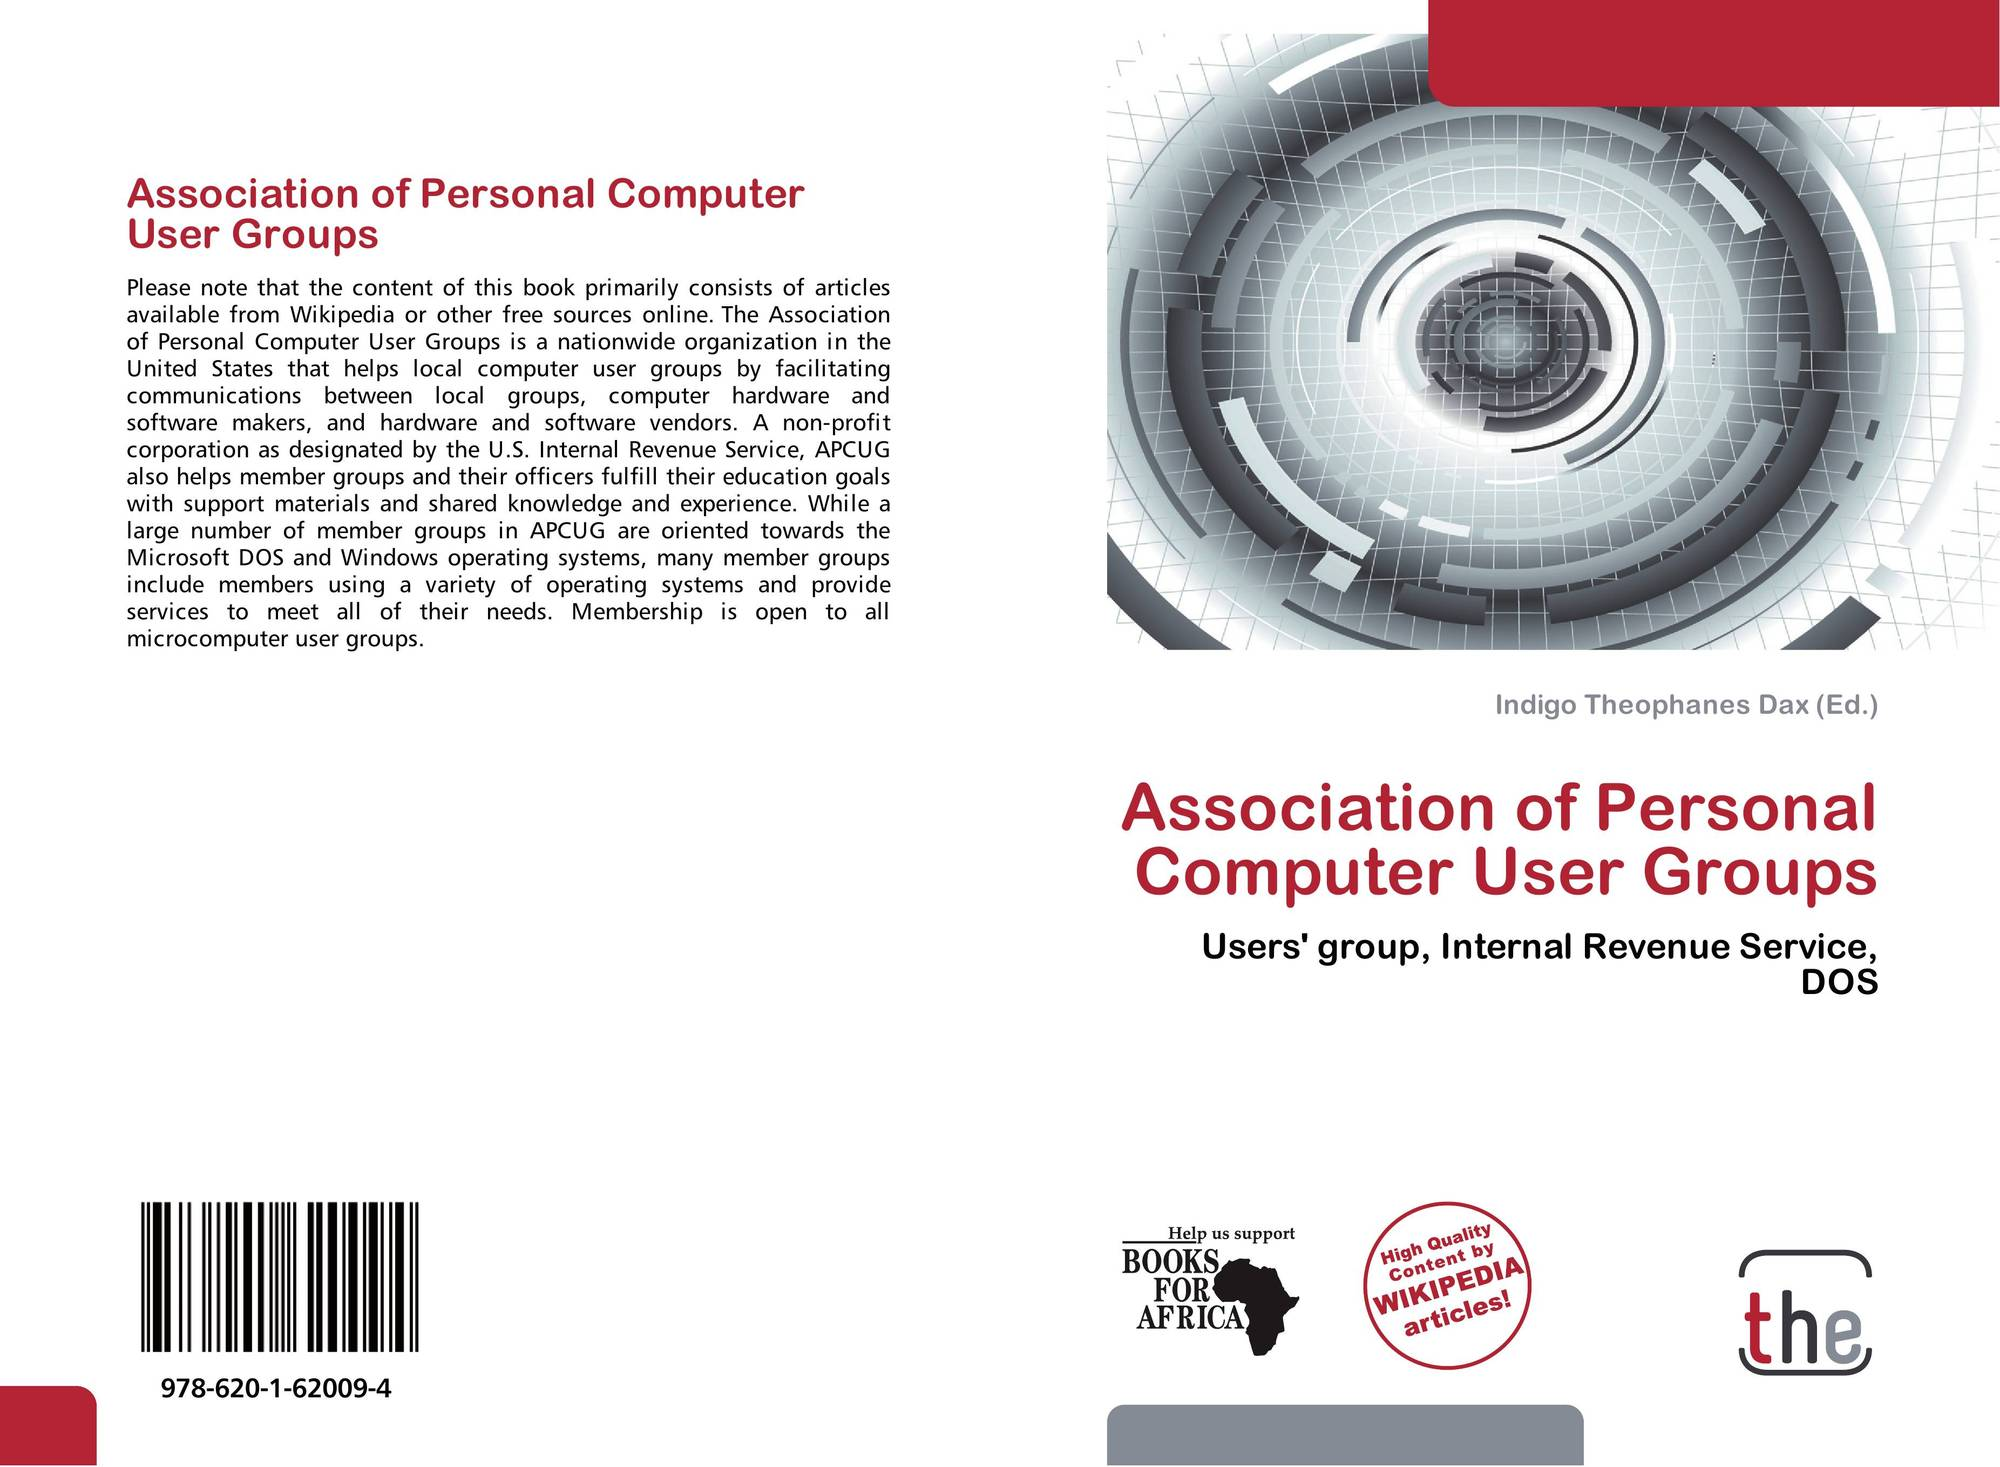 Association of Personal Computer User Groups